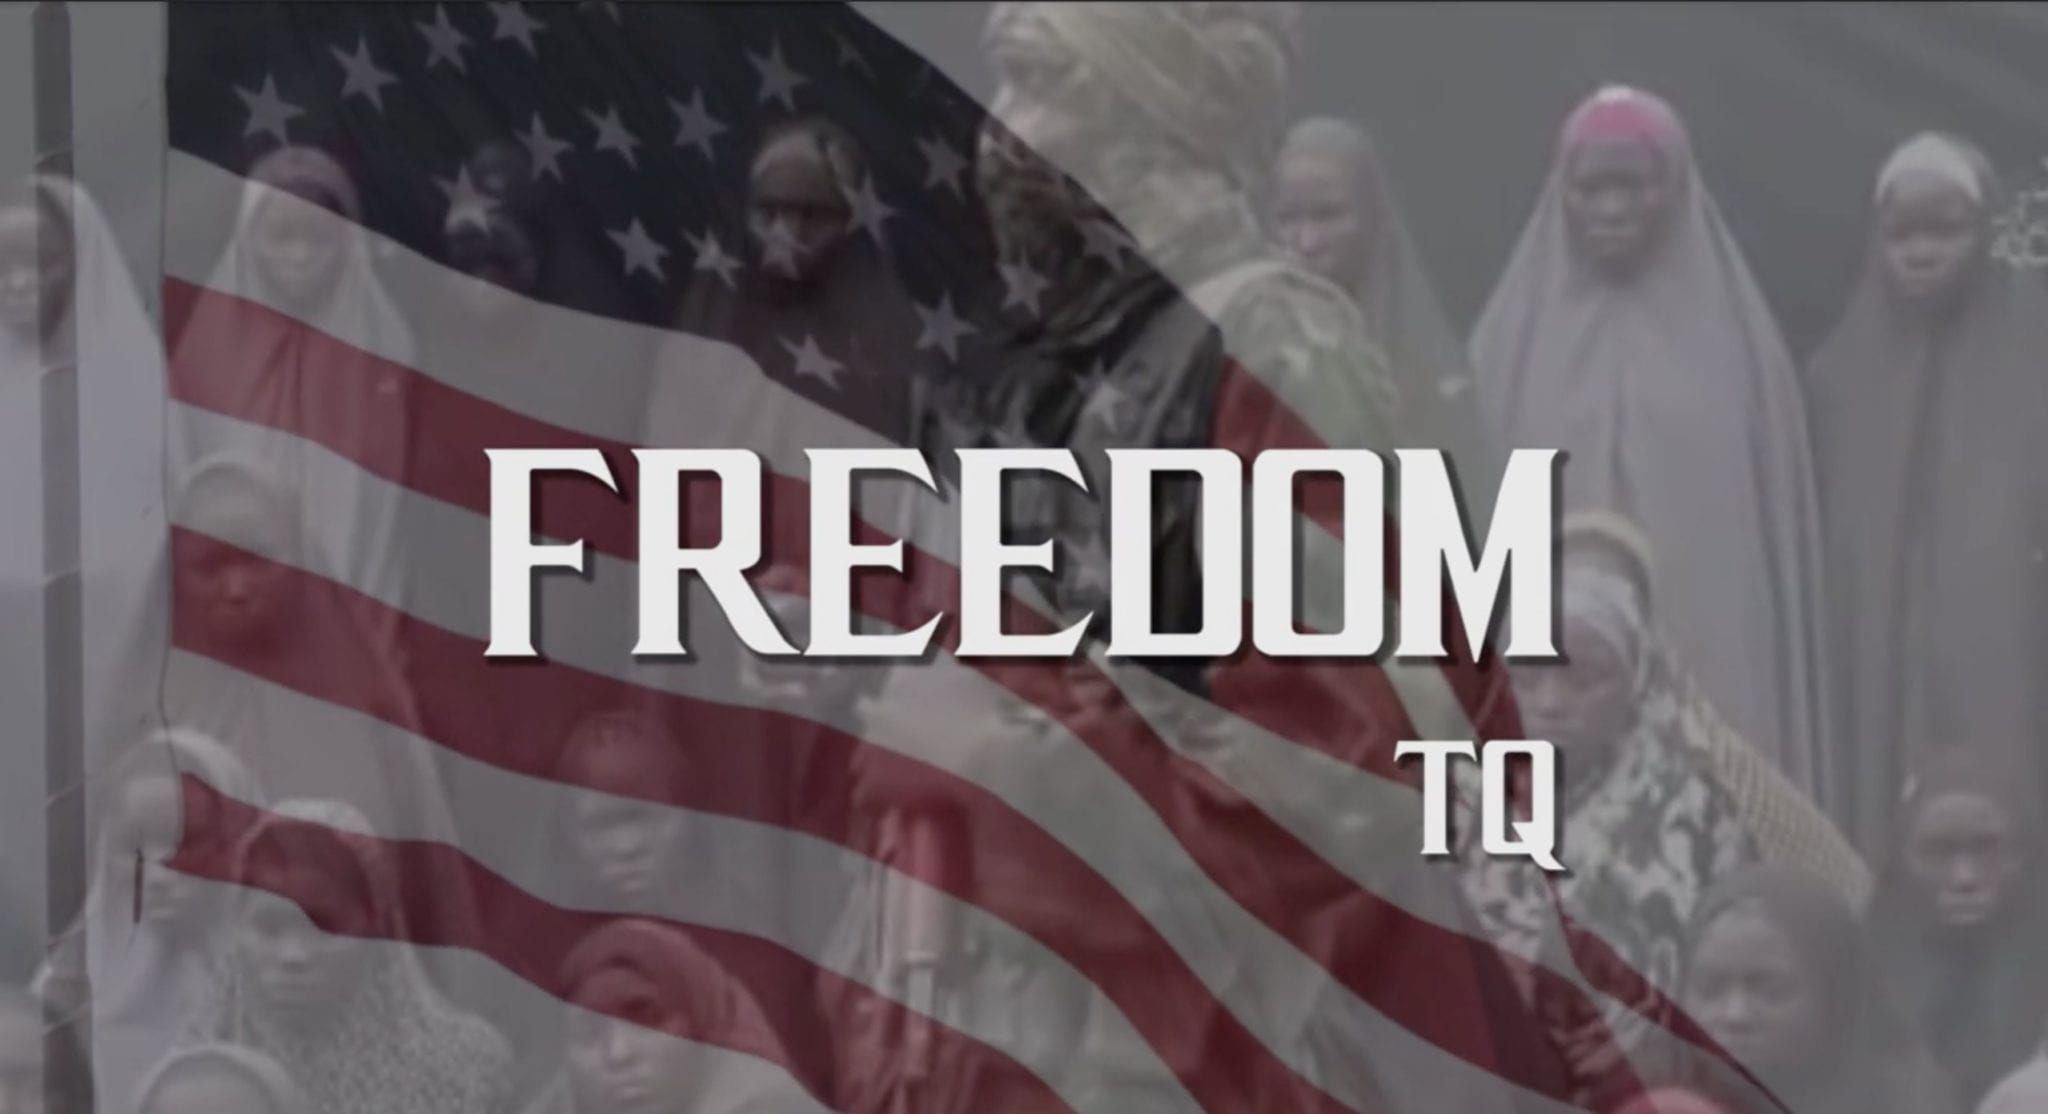 Freedom Music Video